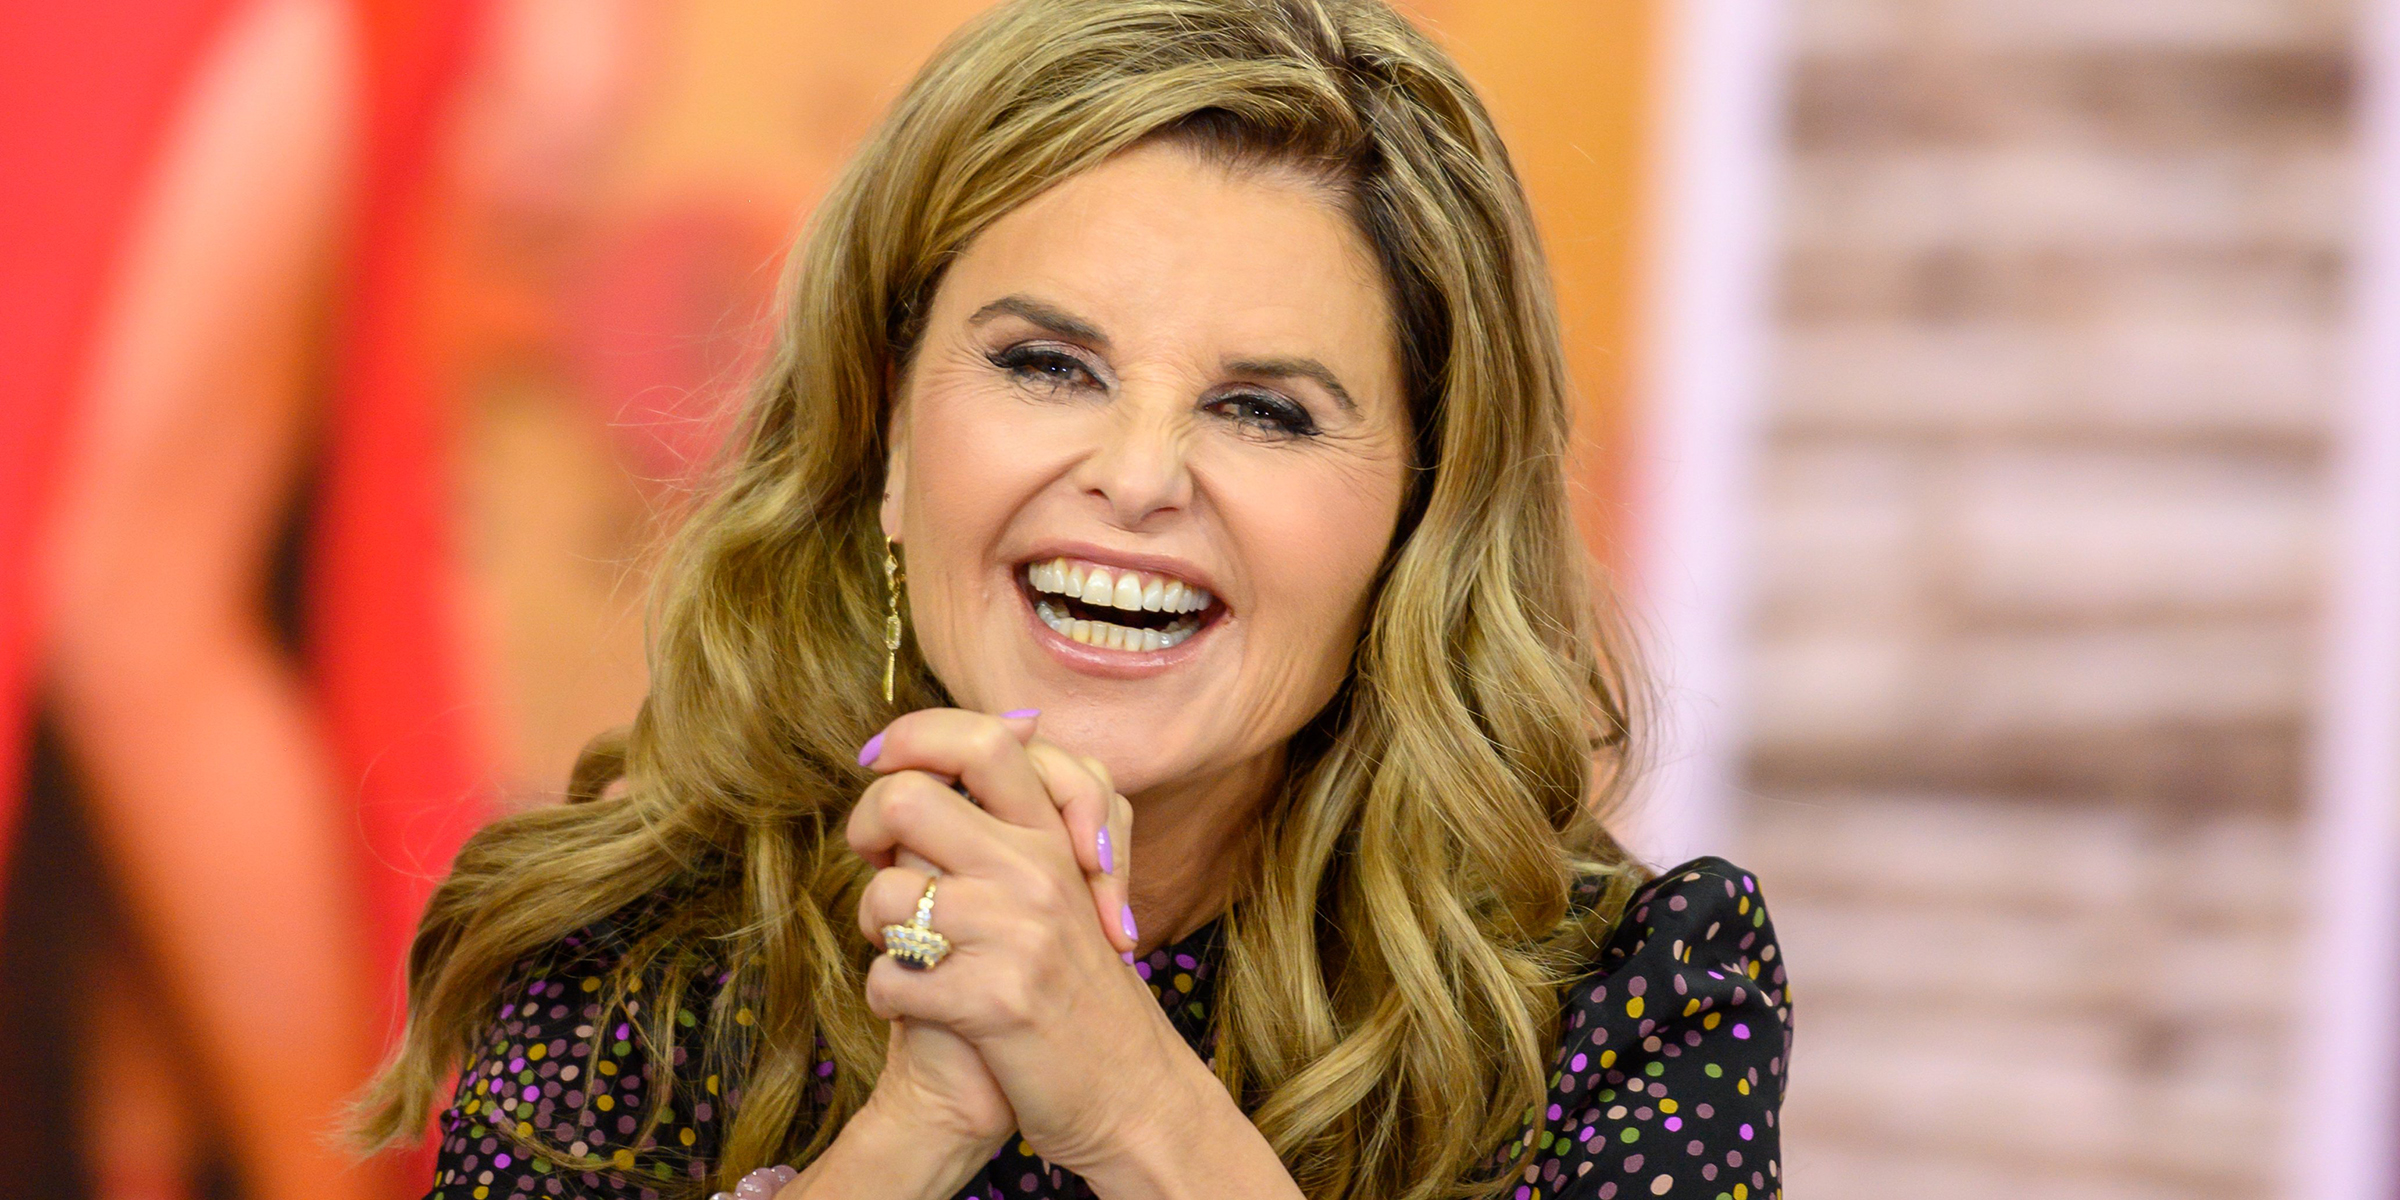 Maria Shriver on finding common ground with people who have different views